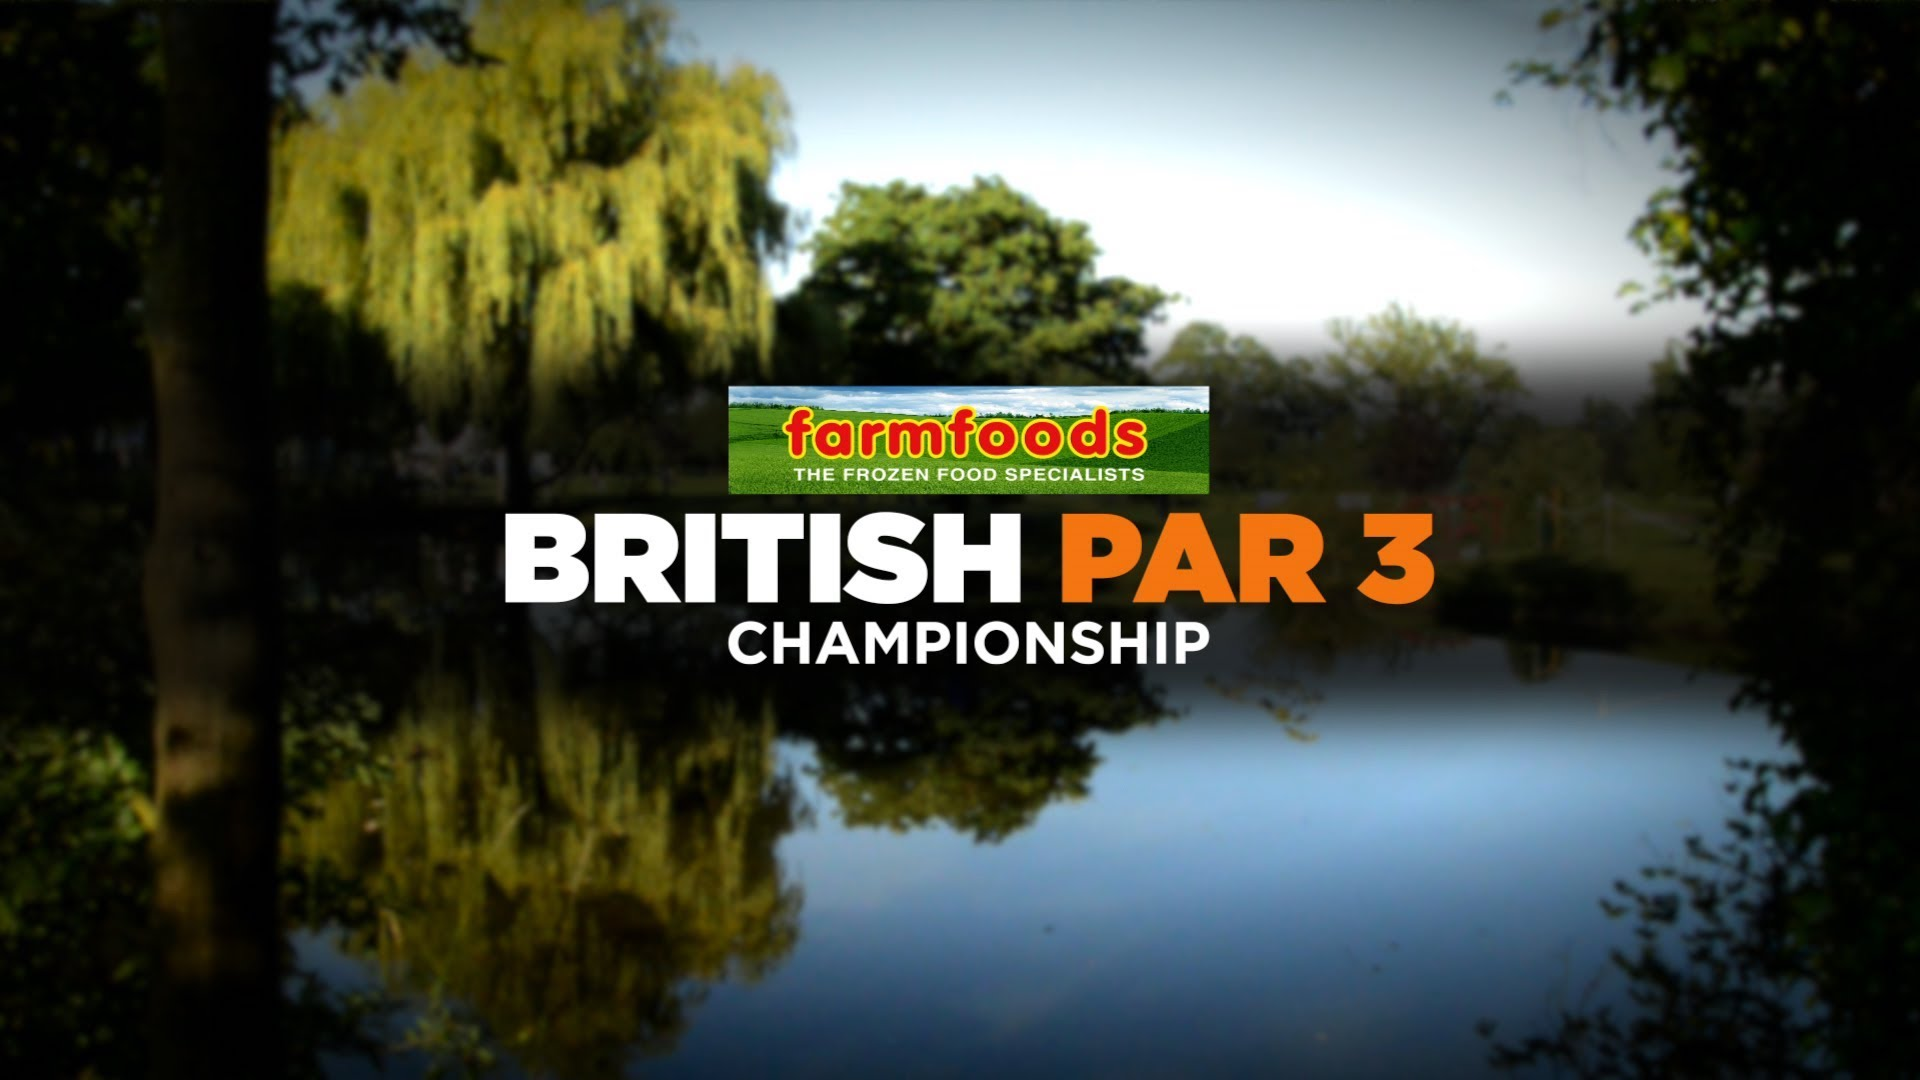 Free tickets to the Farm Foods British Par 3 Championships